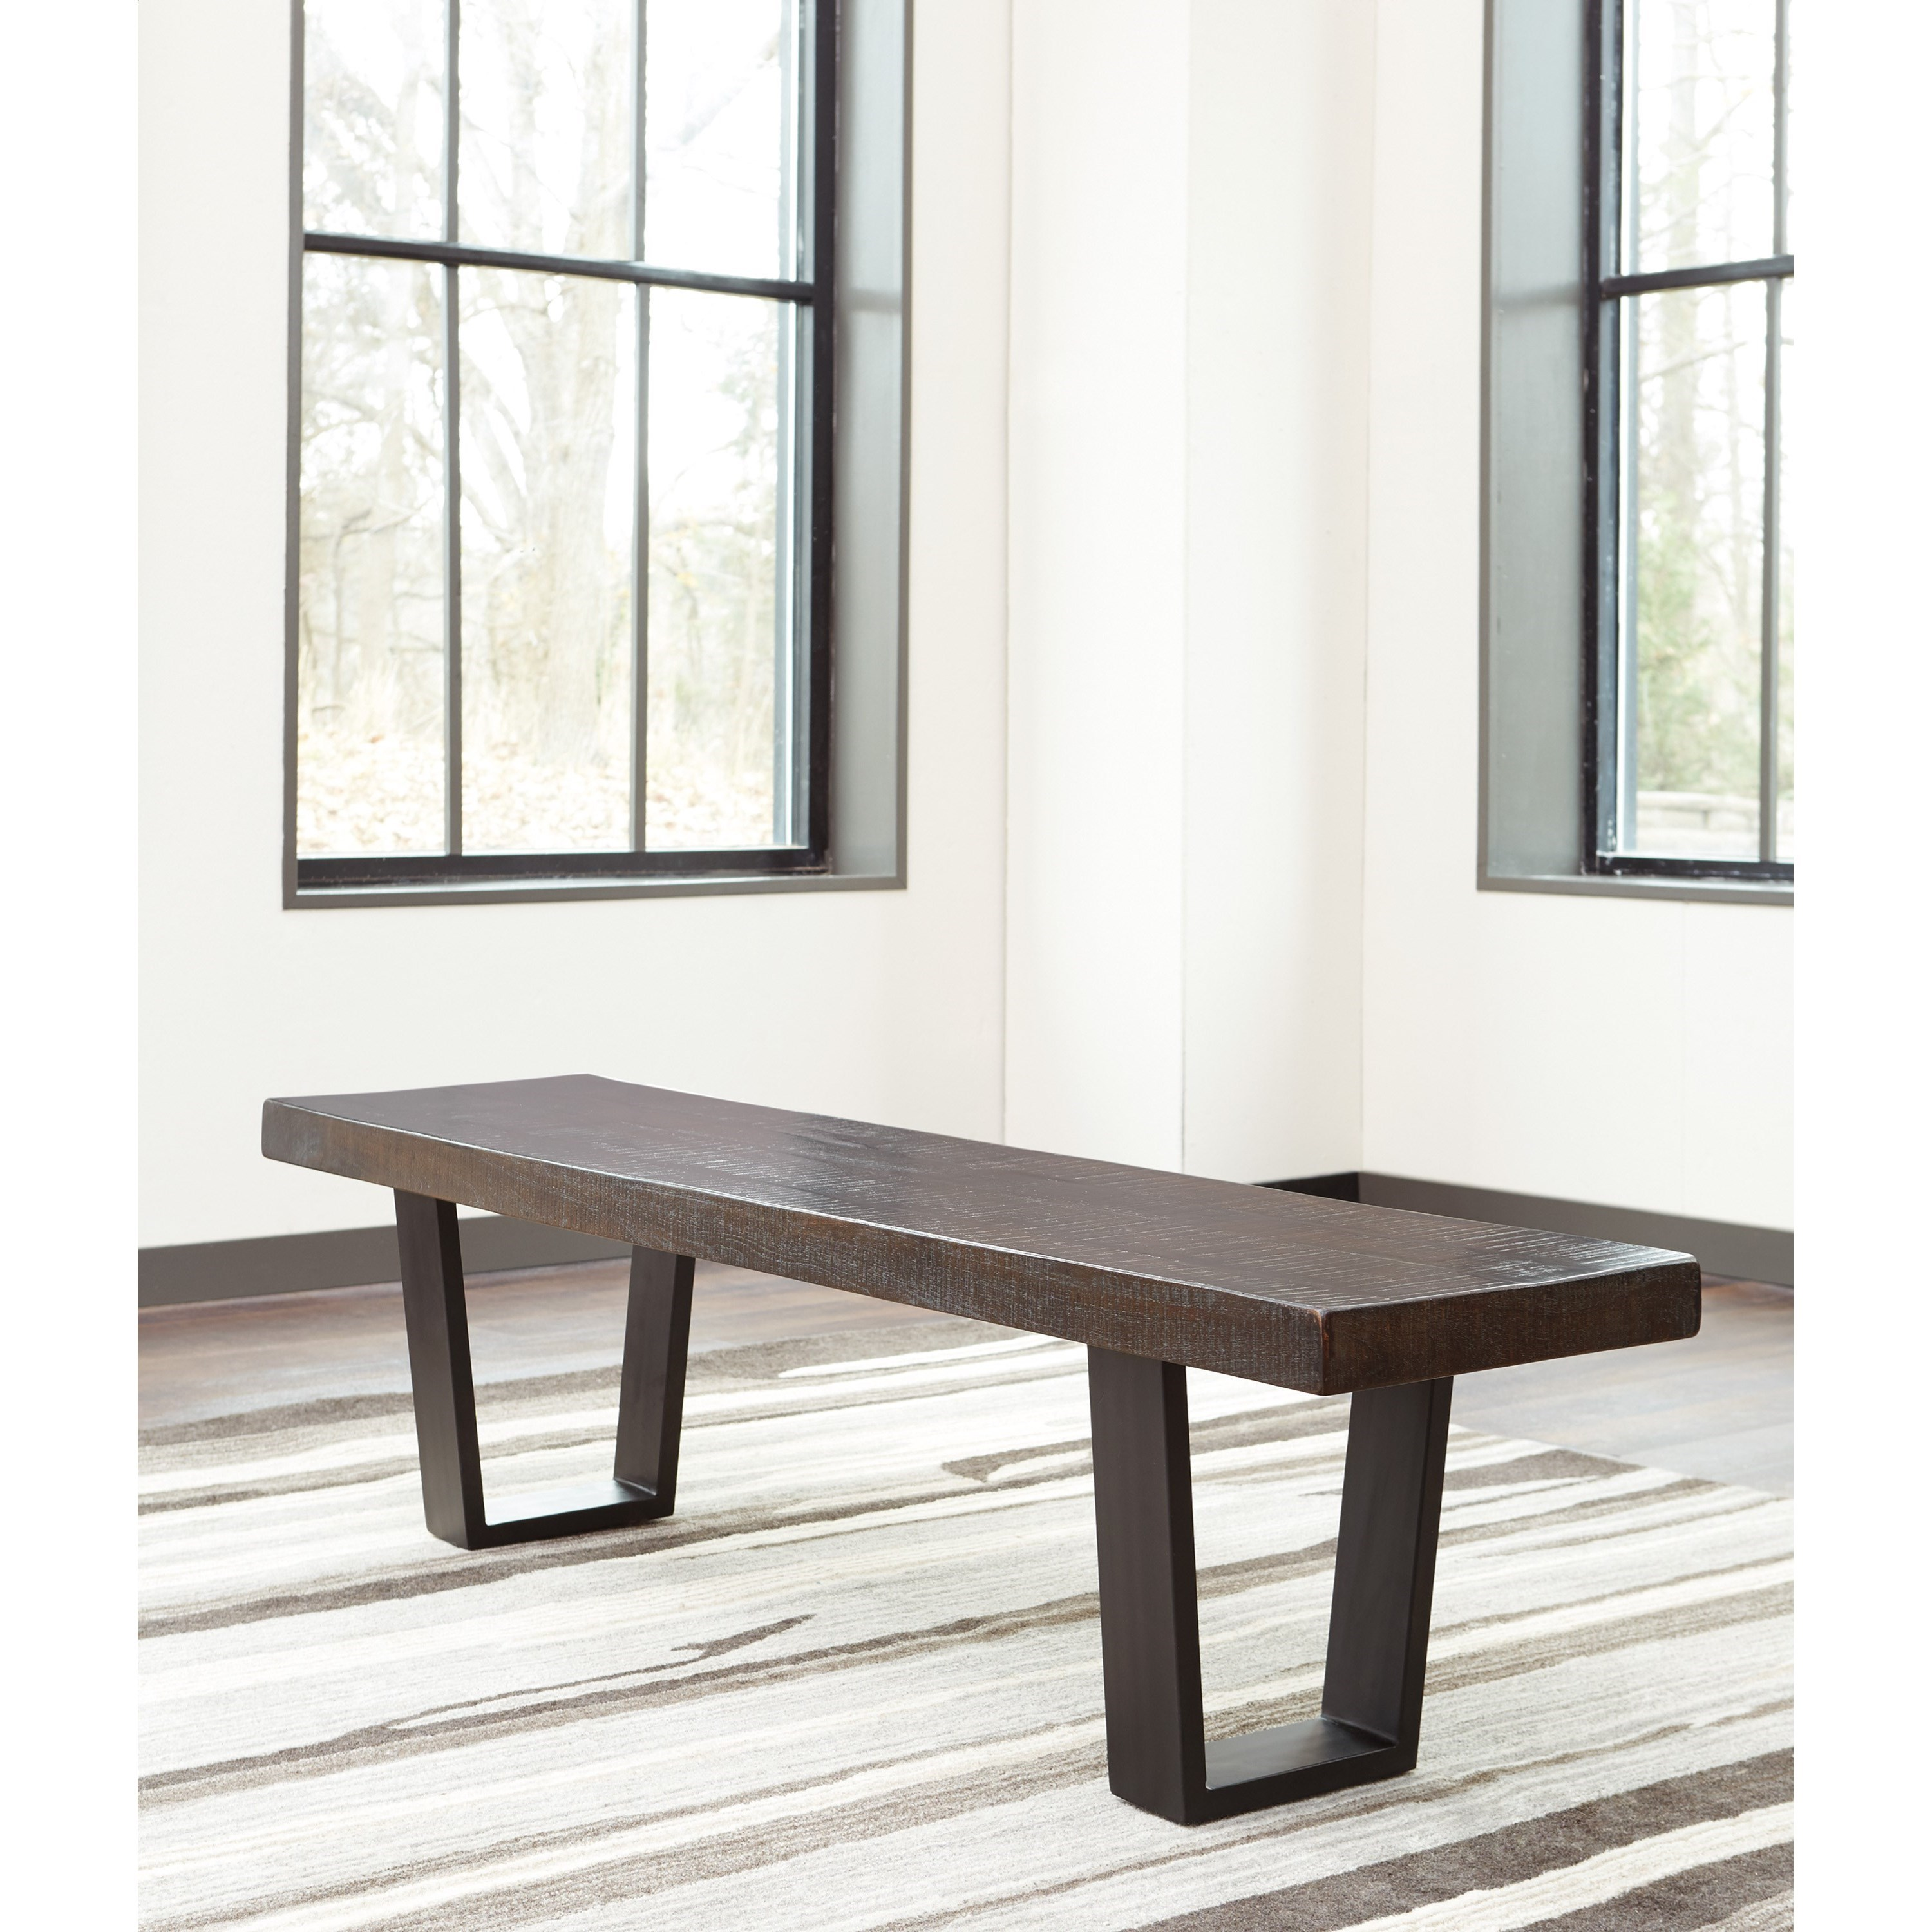 Signature Design By Ashley Parlone D721 00 Modern Rustic Large Dining Room Bench Becker